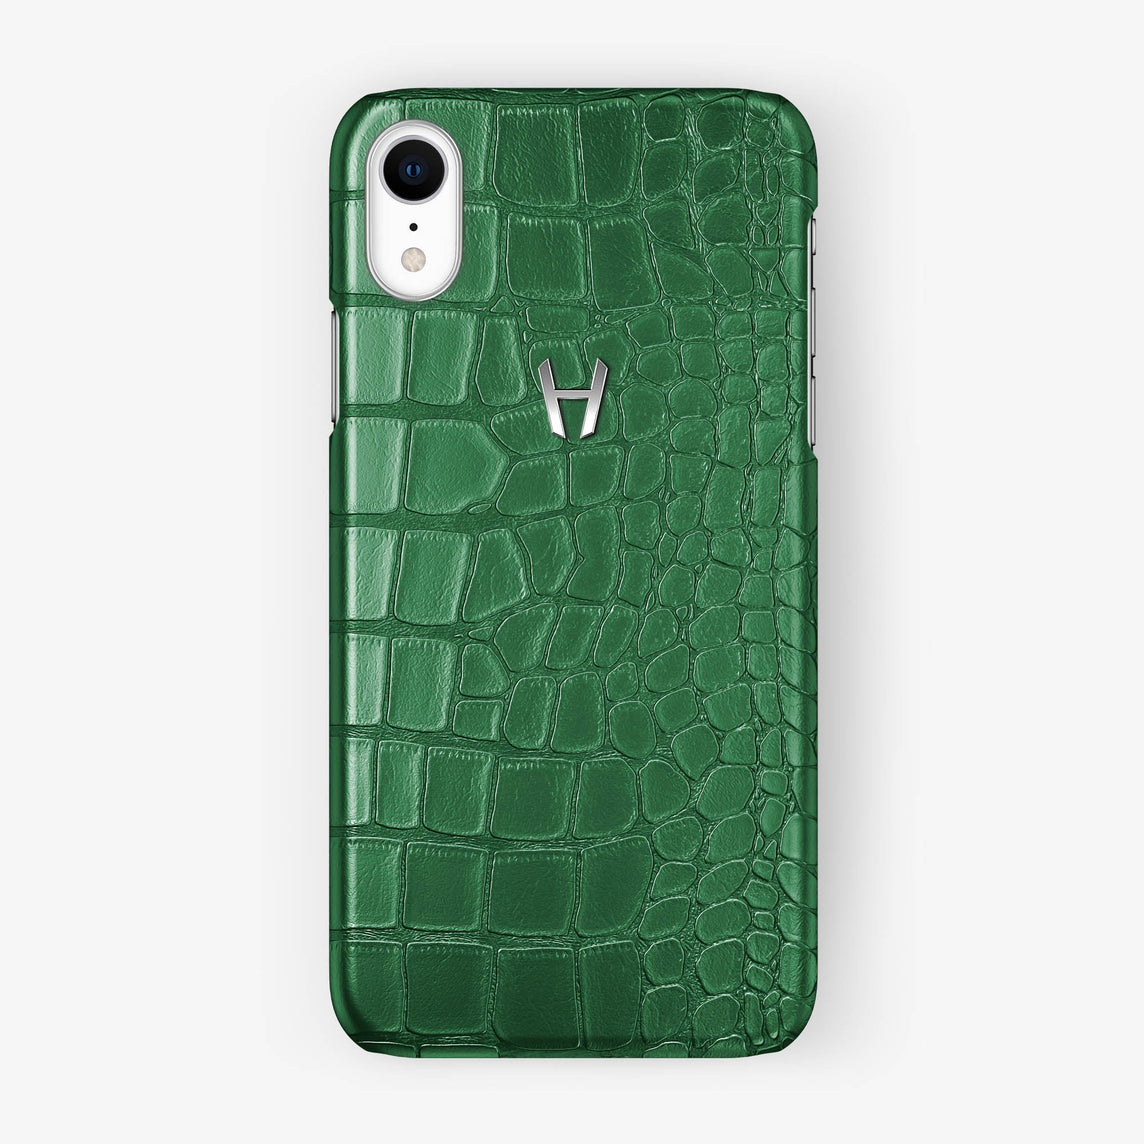 Alligator [iPhone Case] [model:iphone-xr-case] [colour:green] [finishing:stainless-steel]